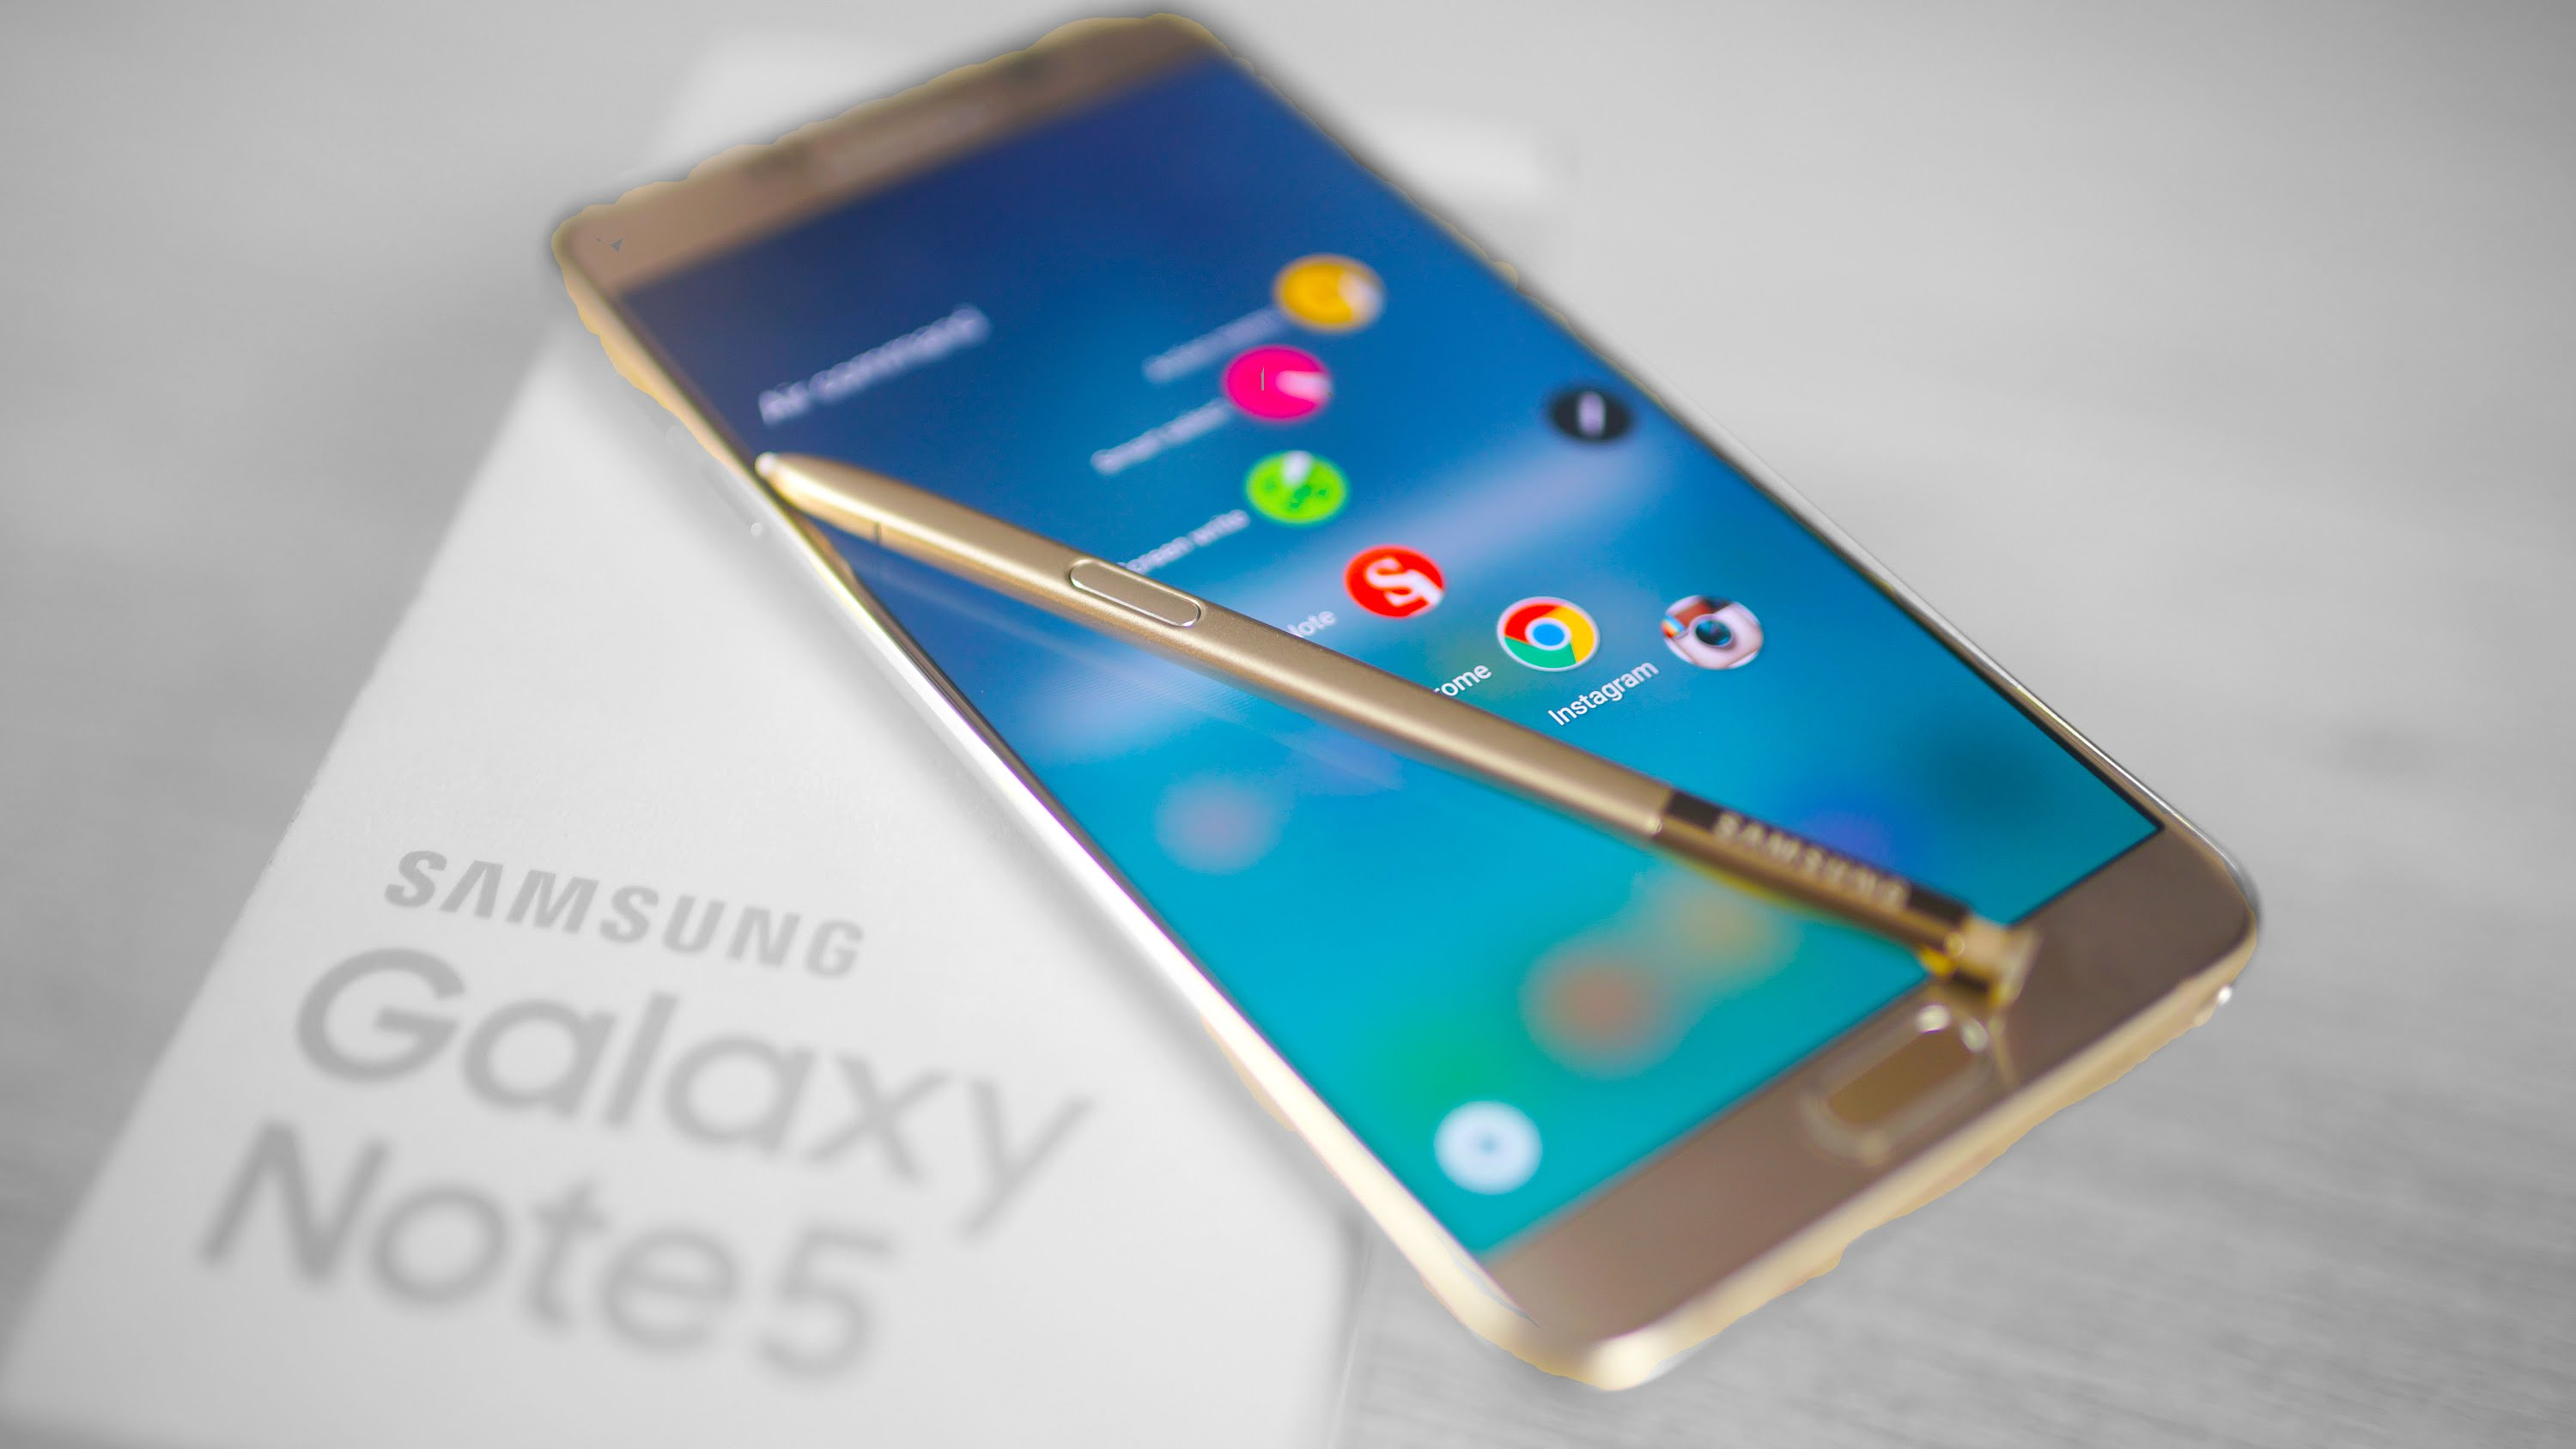 Edge version of the Samsung Galaxy Note7 appears in import listing